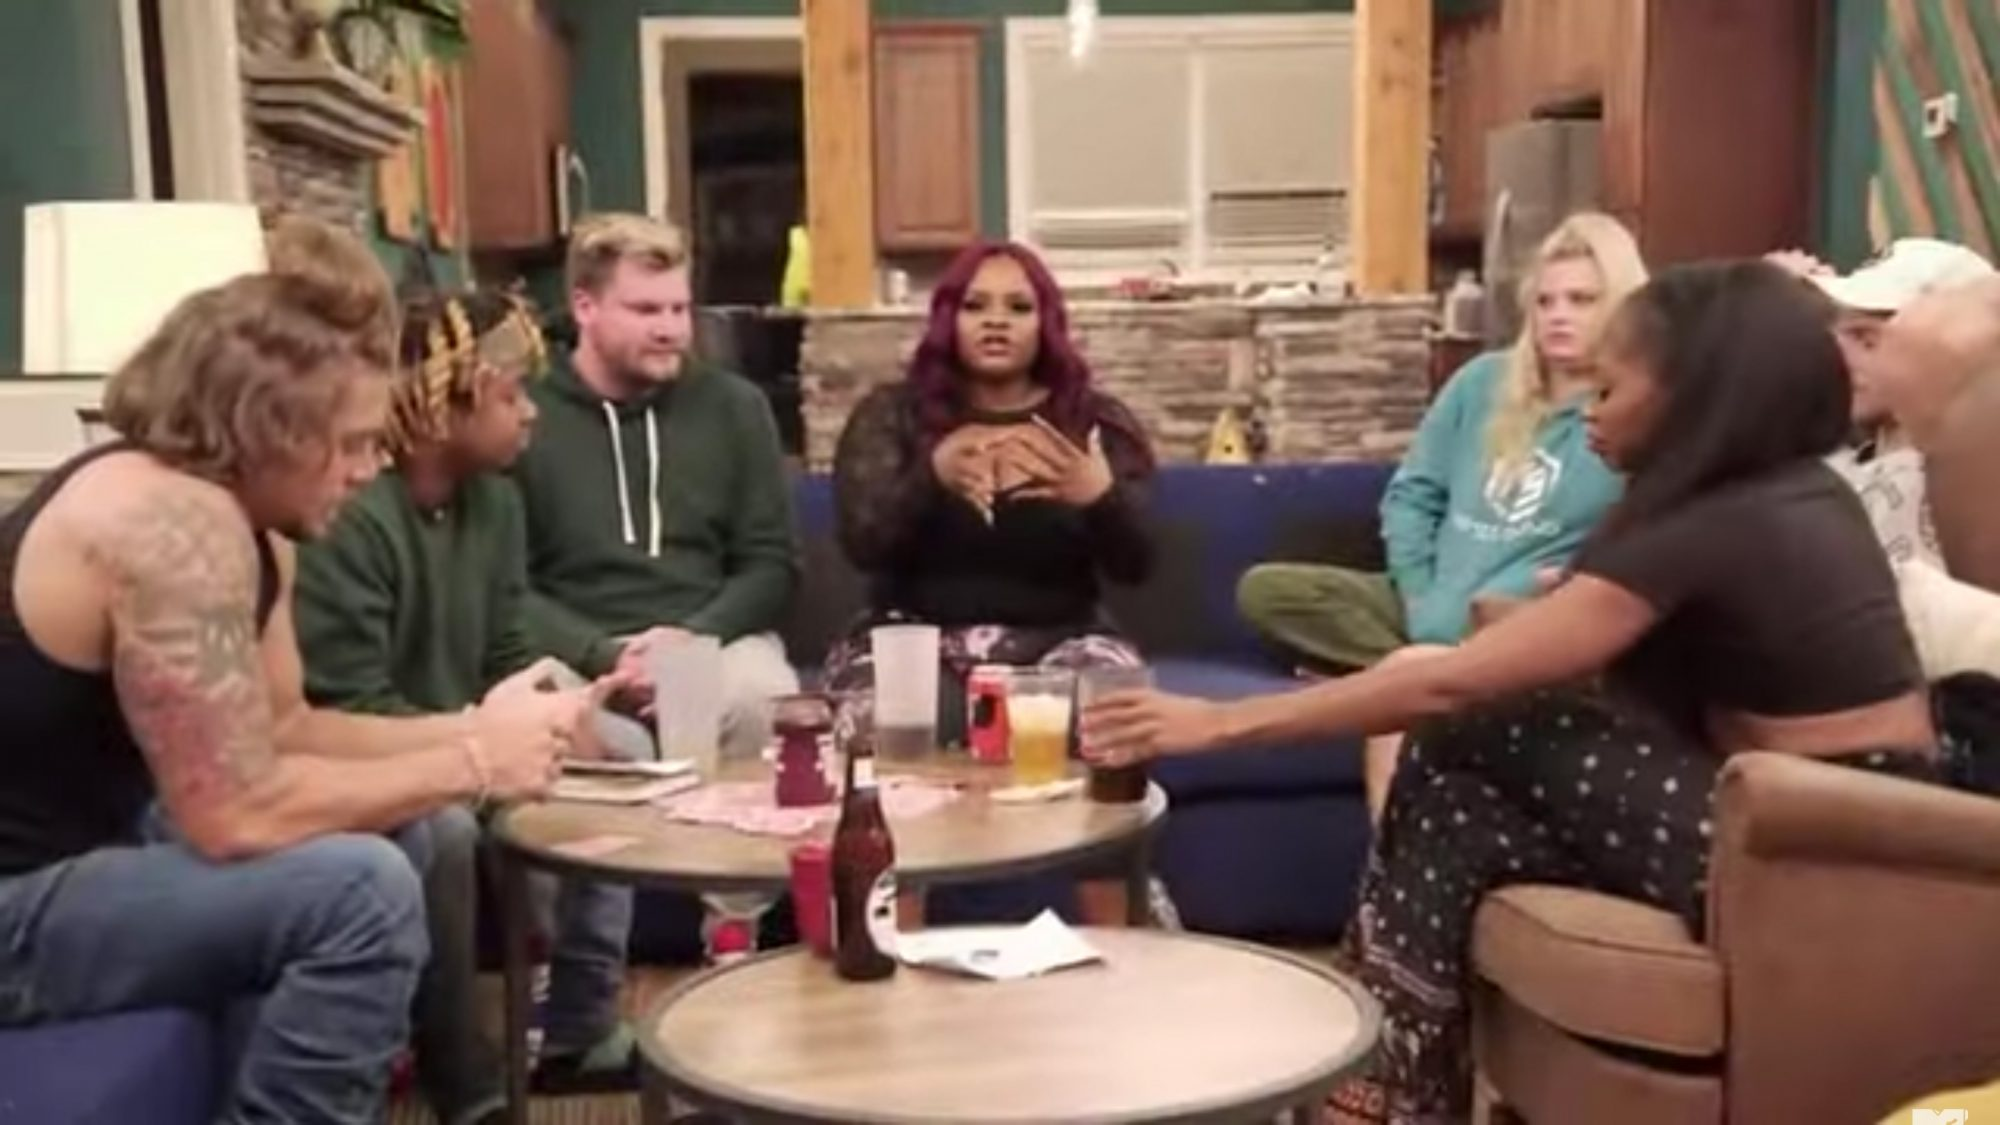 Floribama Shore cast gets into discussion about race and racism